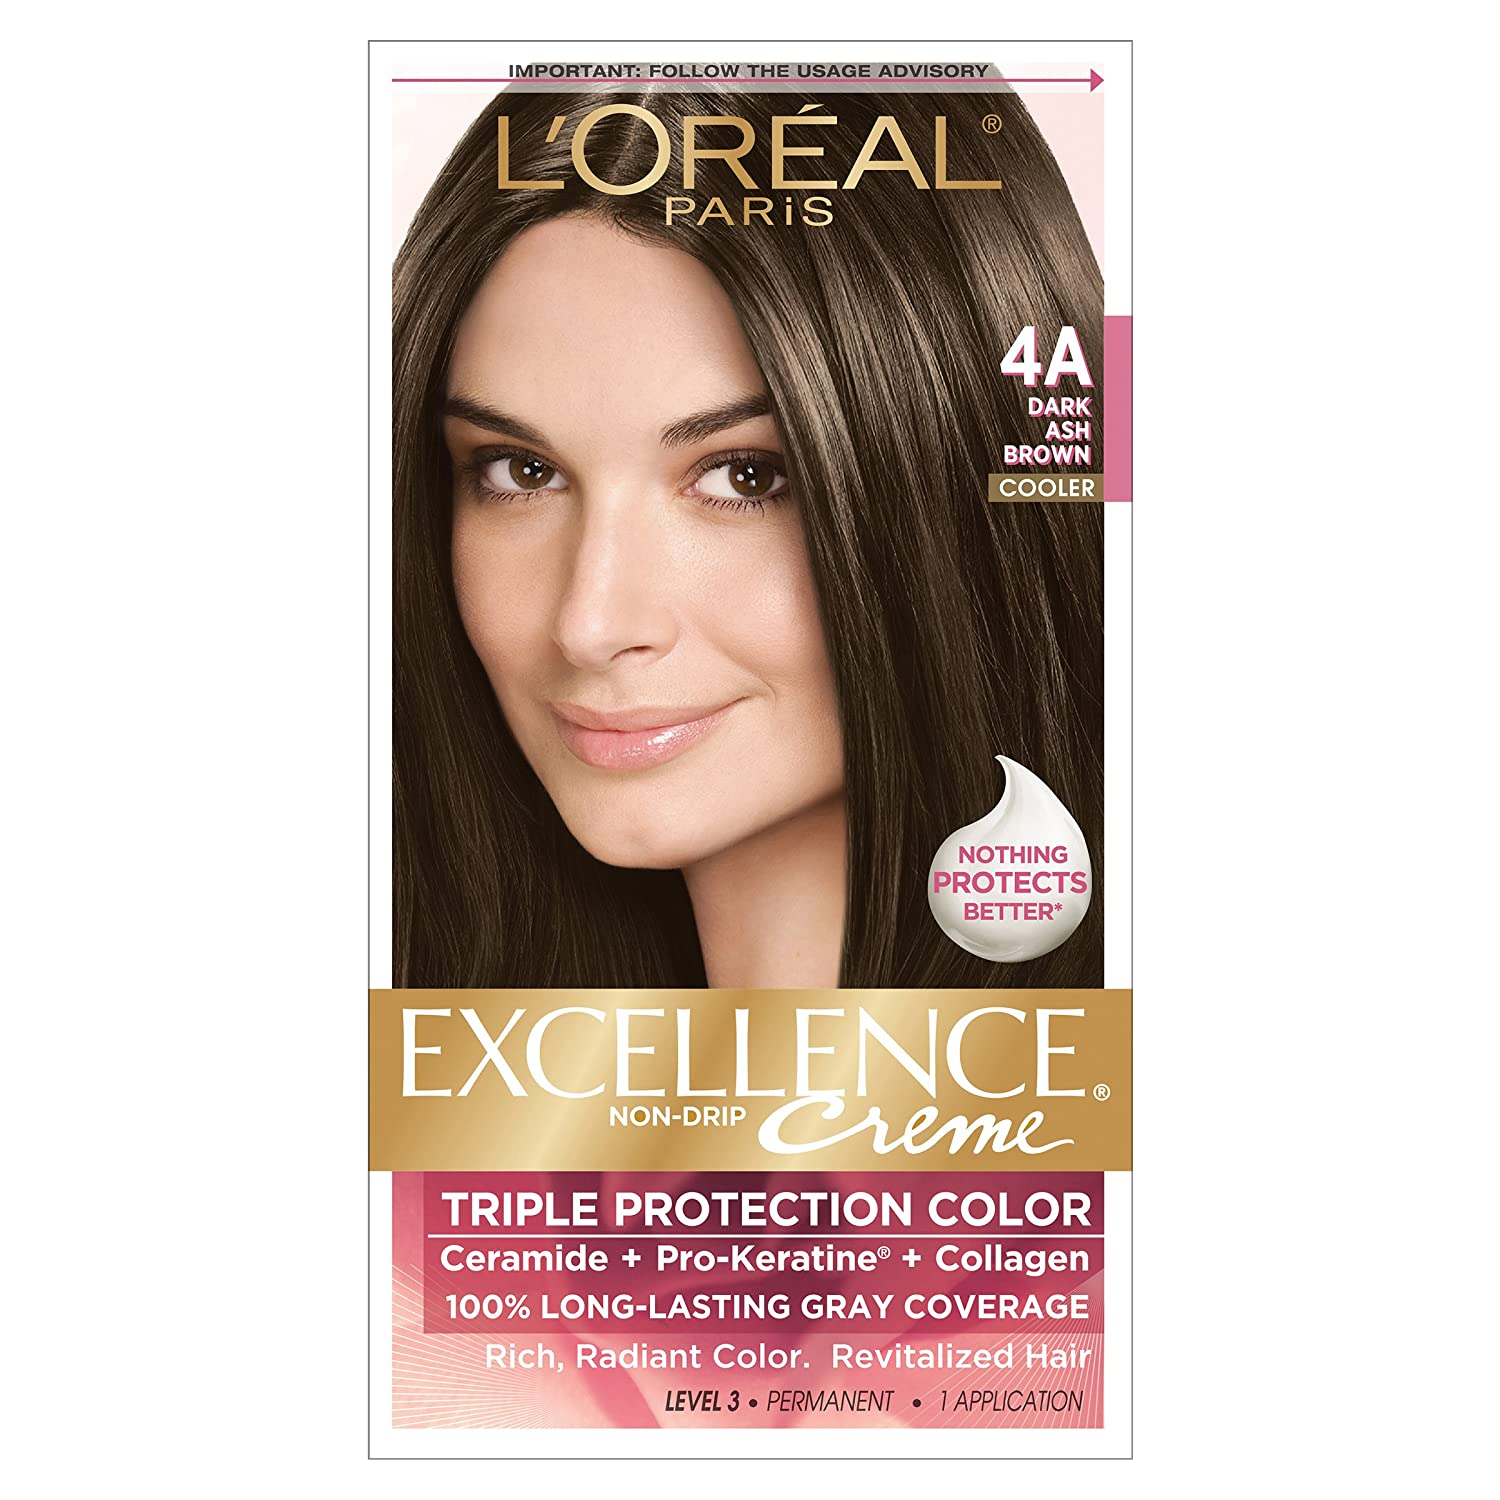 Loral Paris Excellence Crme Permanent Hair Color 4a Dark Ash